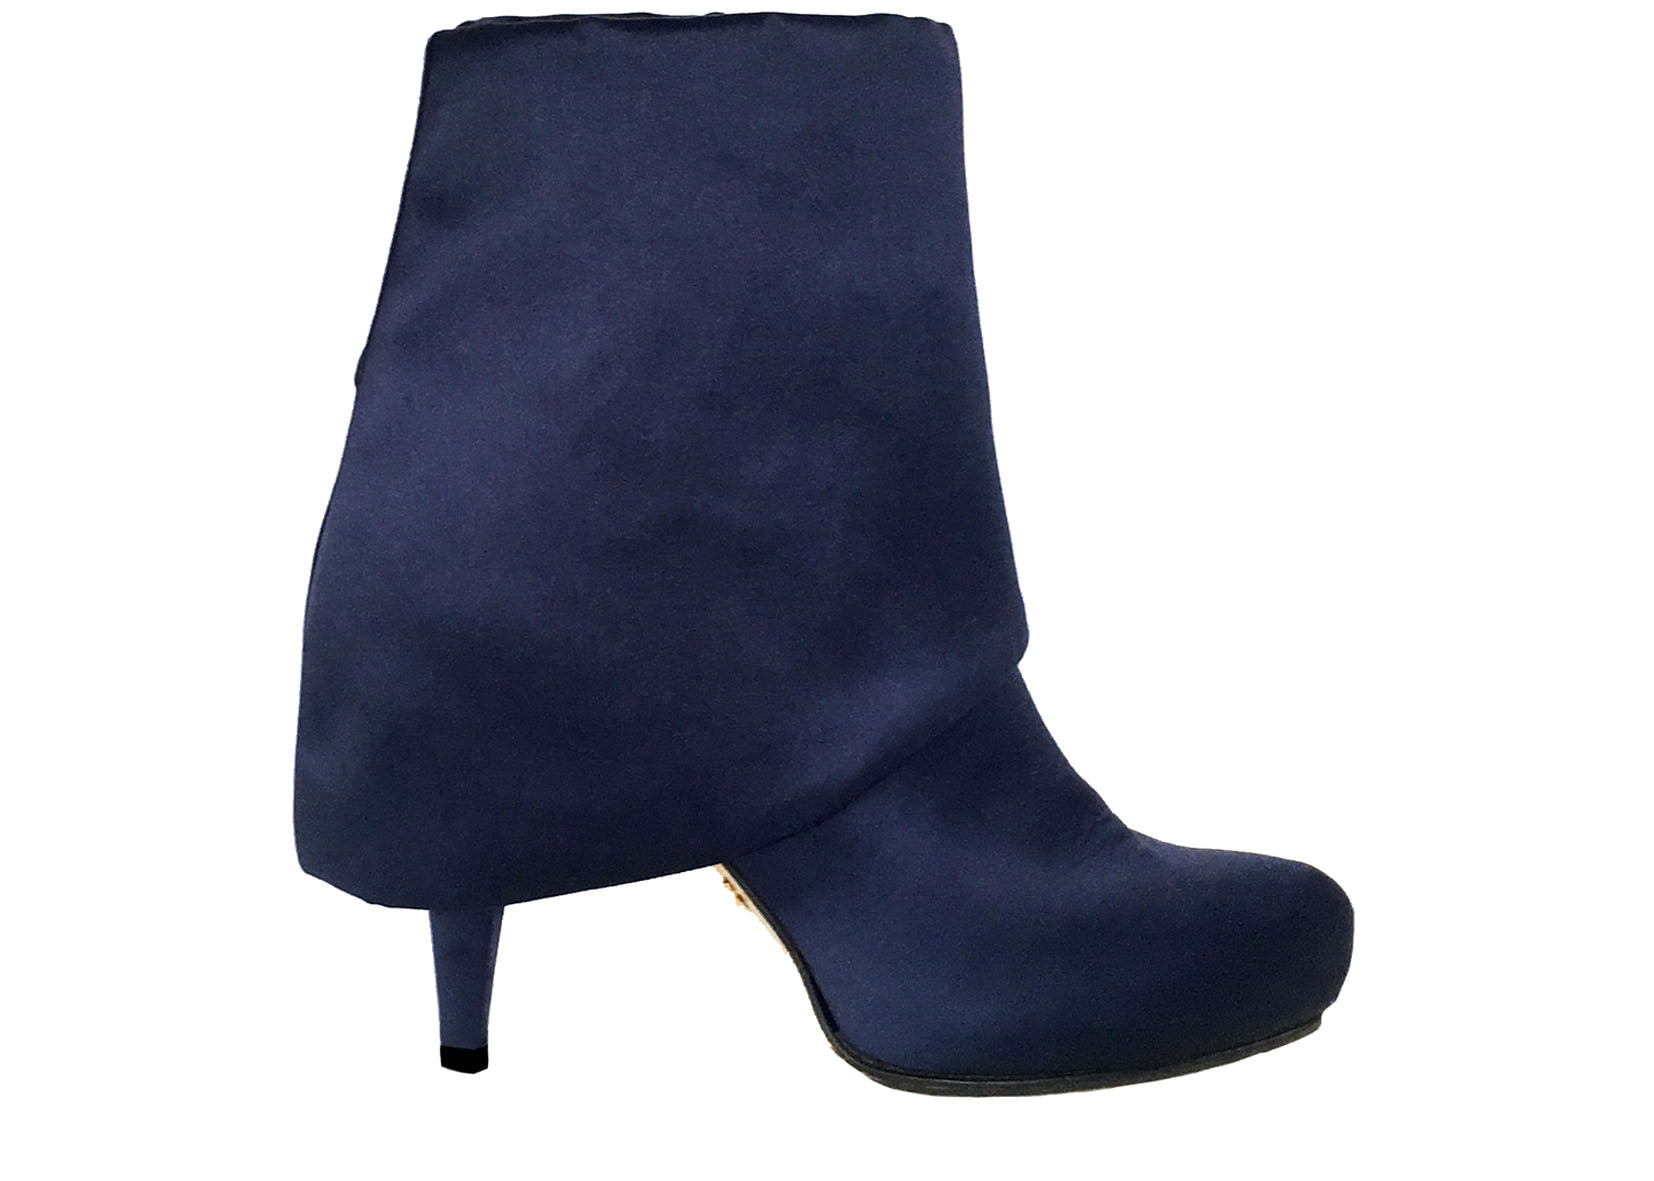 Chloe satin ankle boots, luxury vegan boots, by designer Ivana Basilotta for No One's Skin